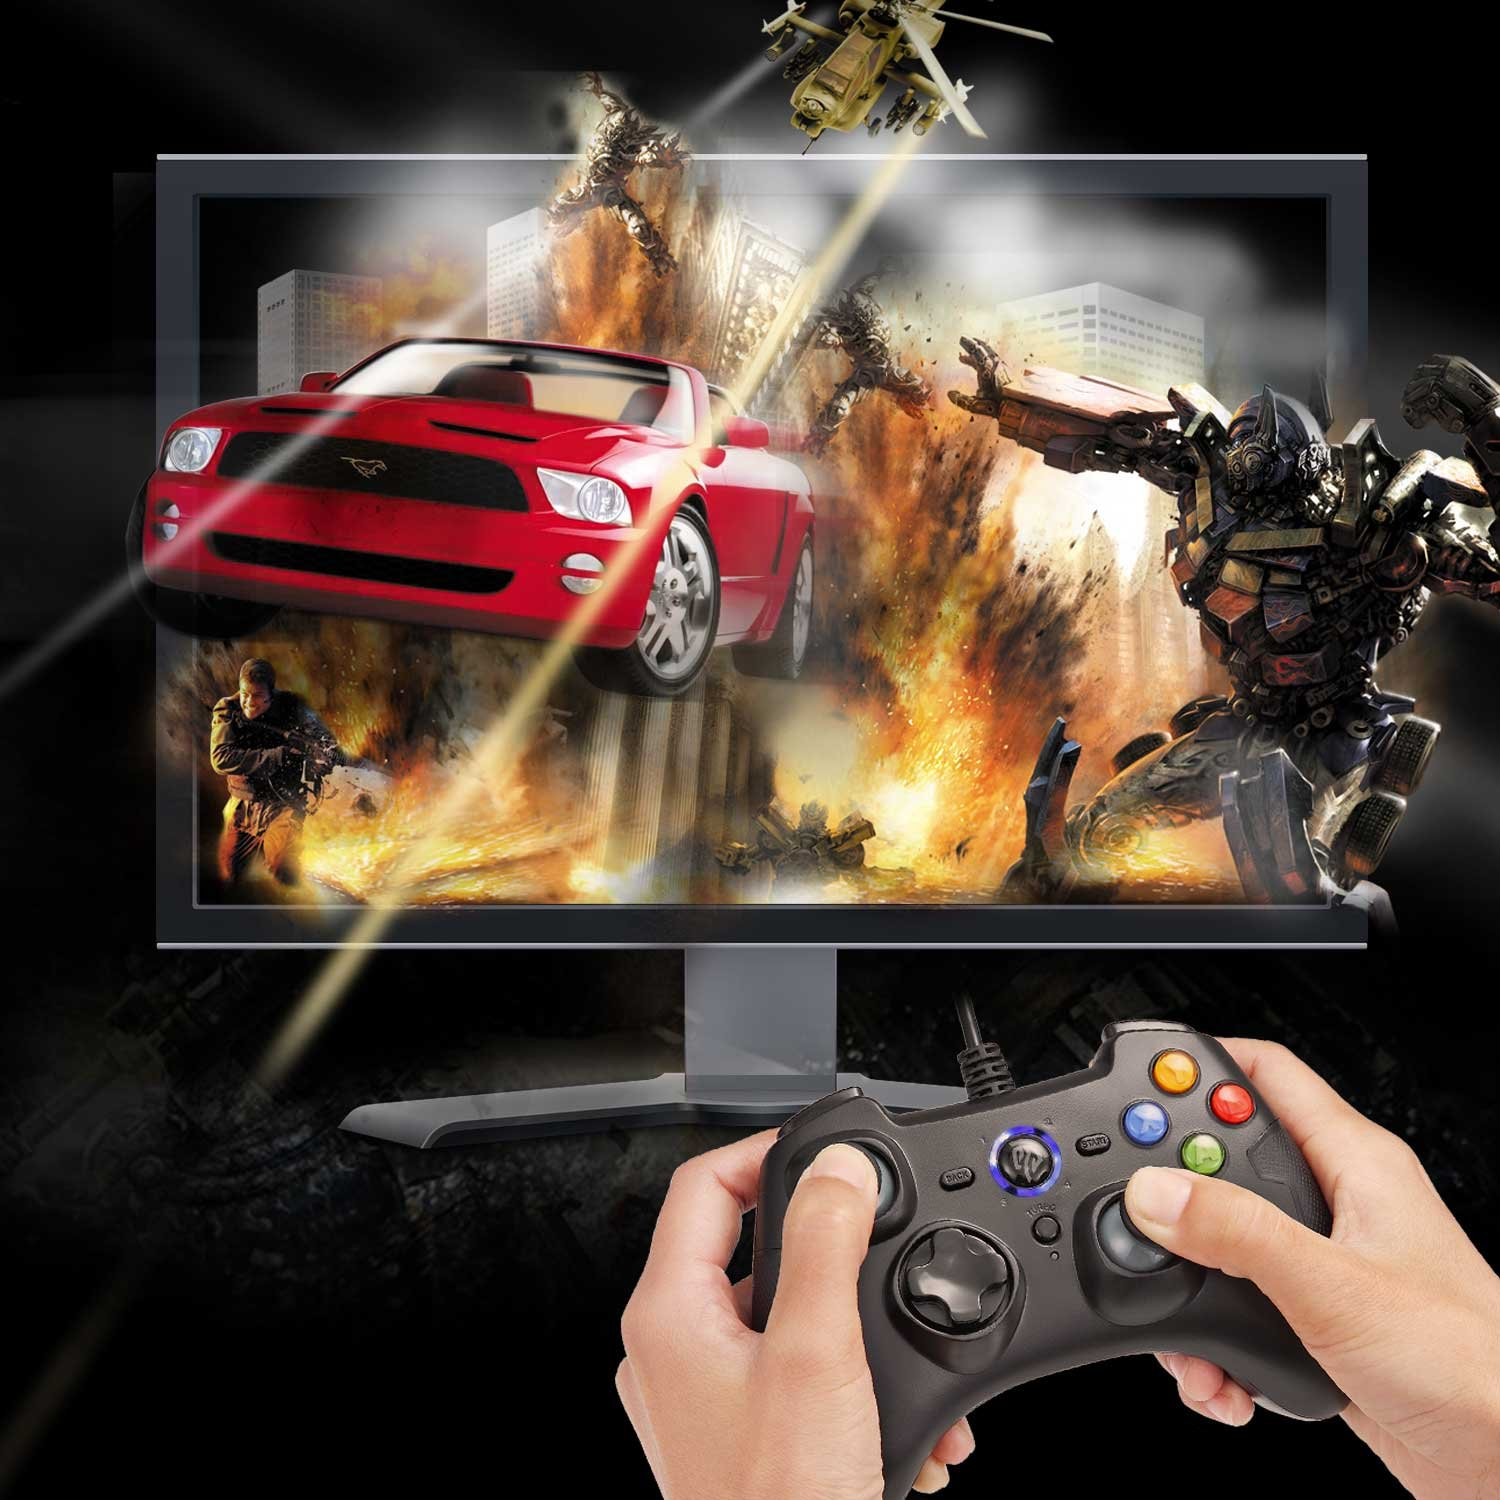 Vista,TV Box Portable Windows XP//7//8//8.1//10 PS3 Android Wireless Controller EasySMX 2.4 G PC PS3 Gamepads with Vibration Fire Button Range up to 10m Support PC